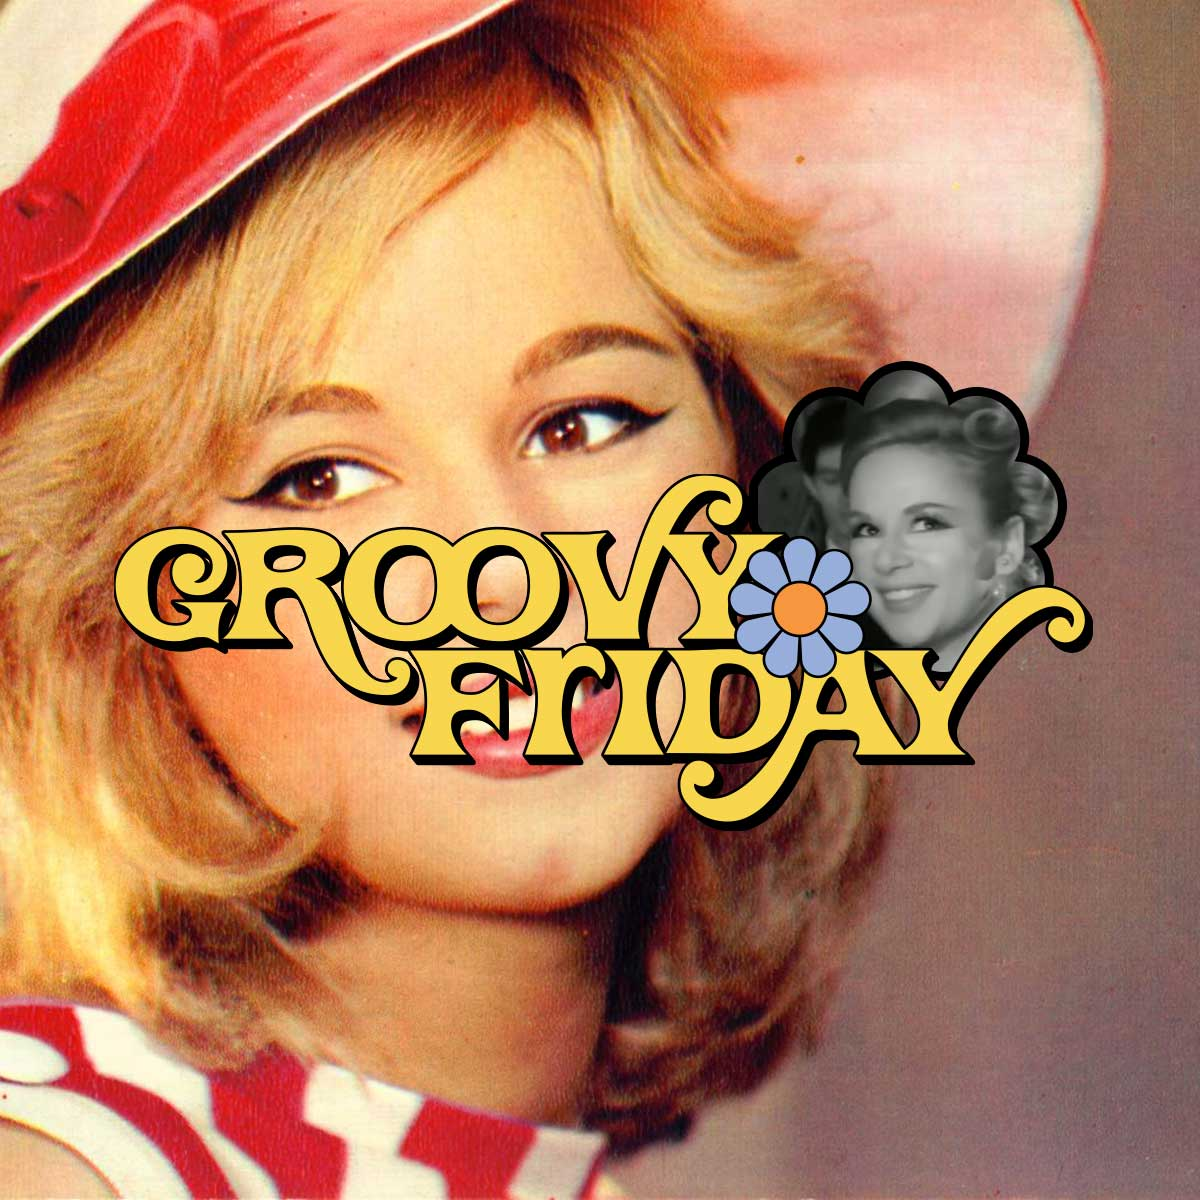 Groovy Friday/Wednesday – Thanksgrooving